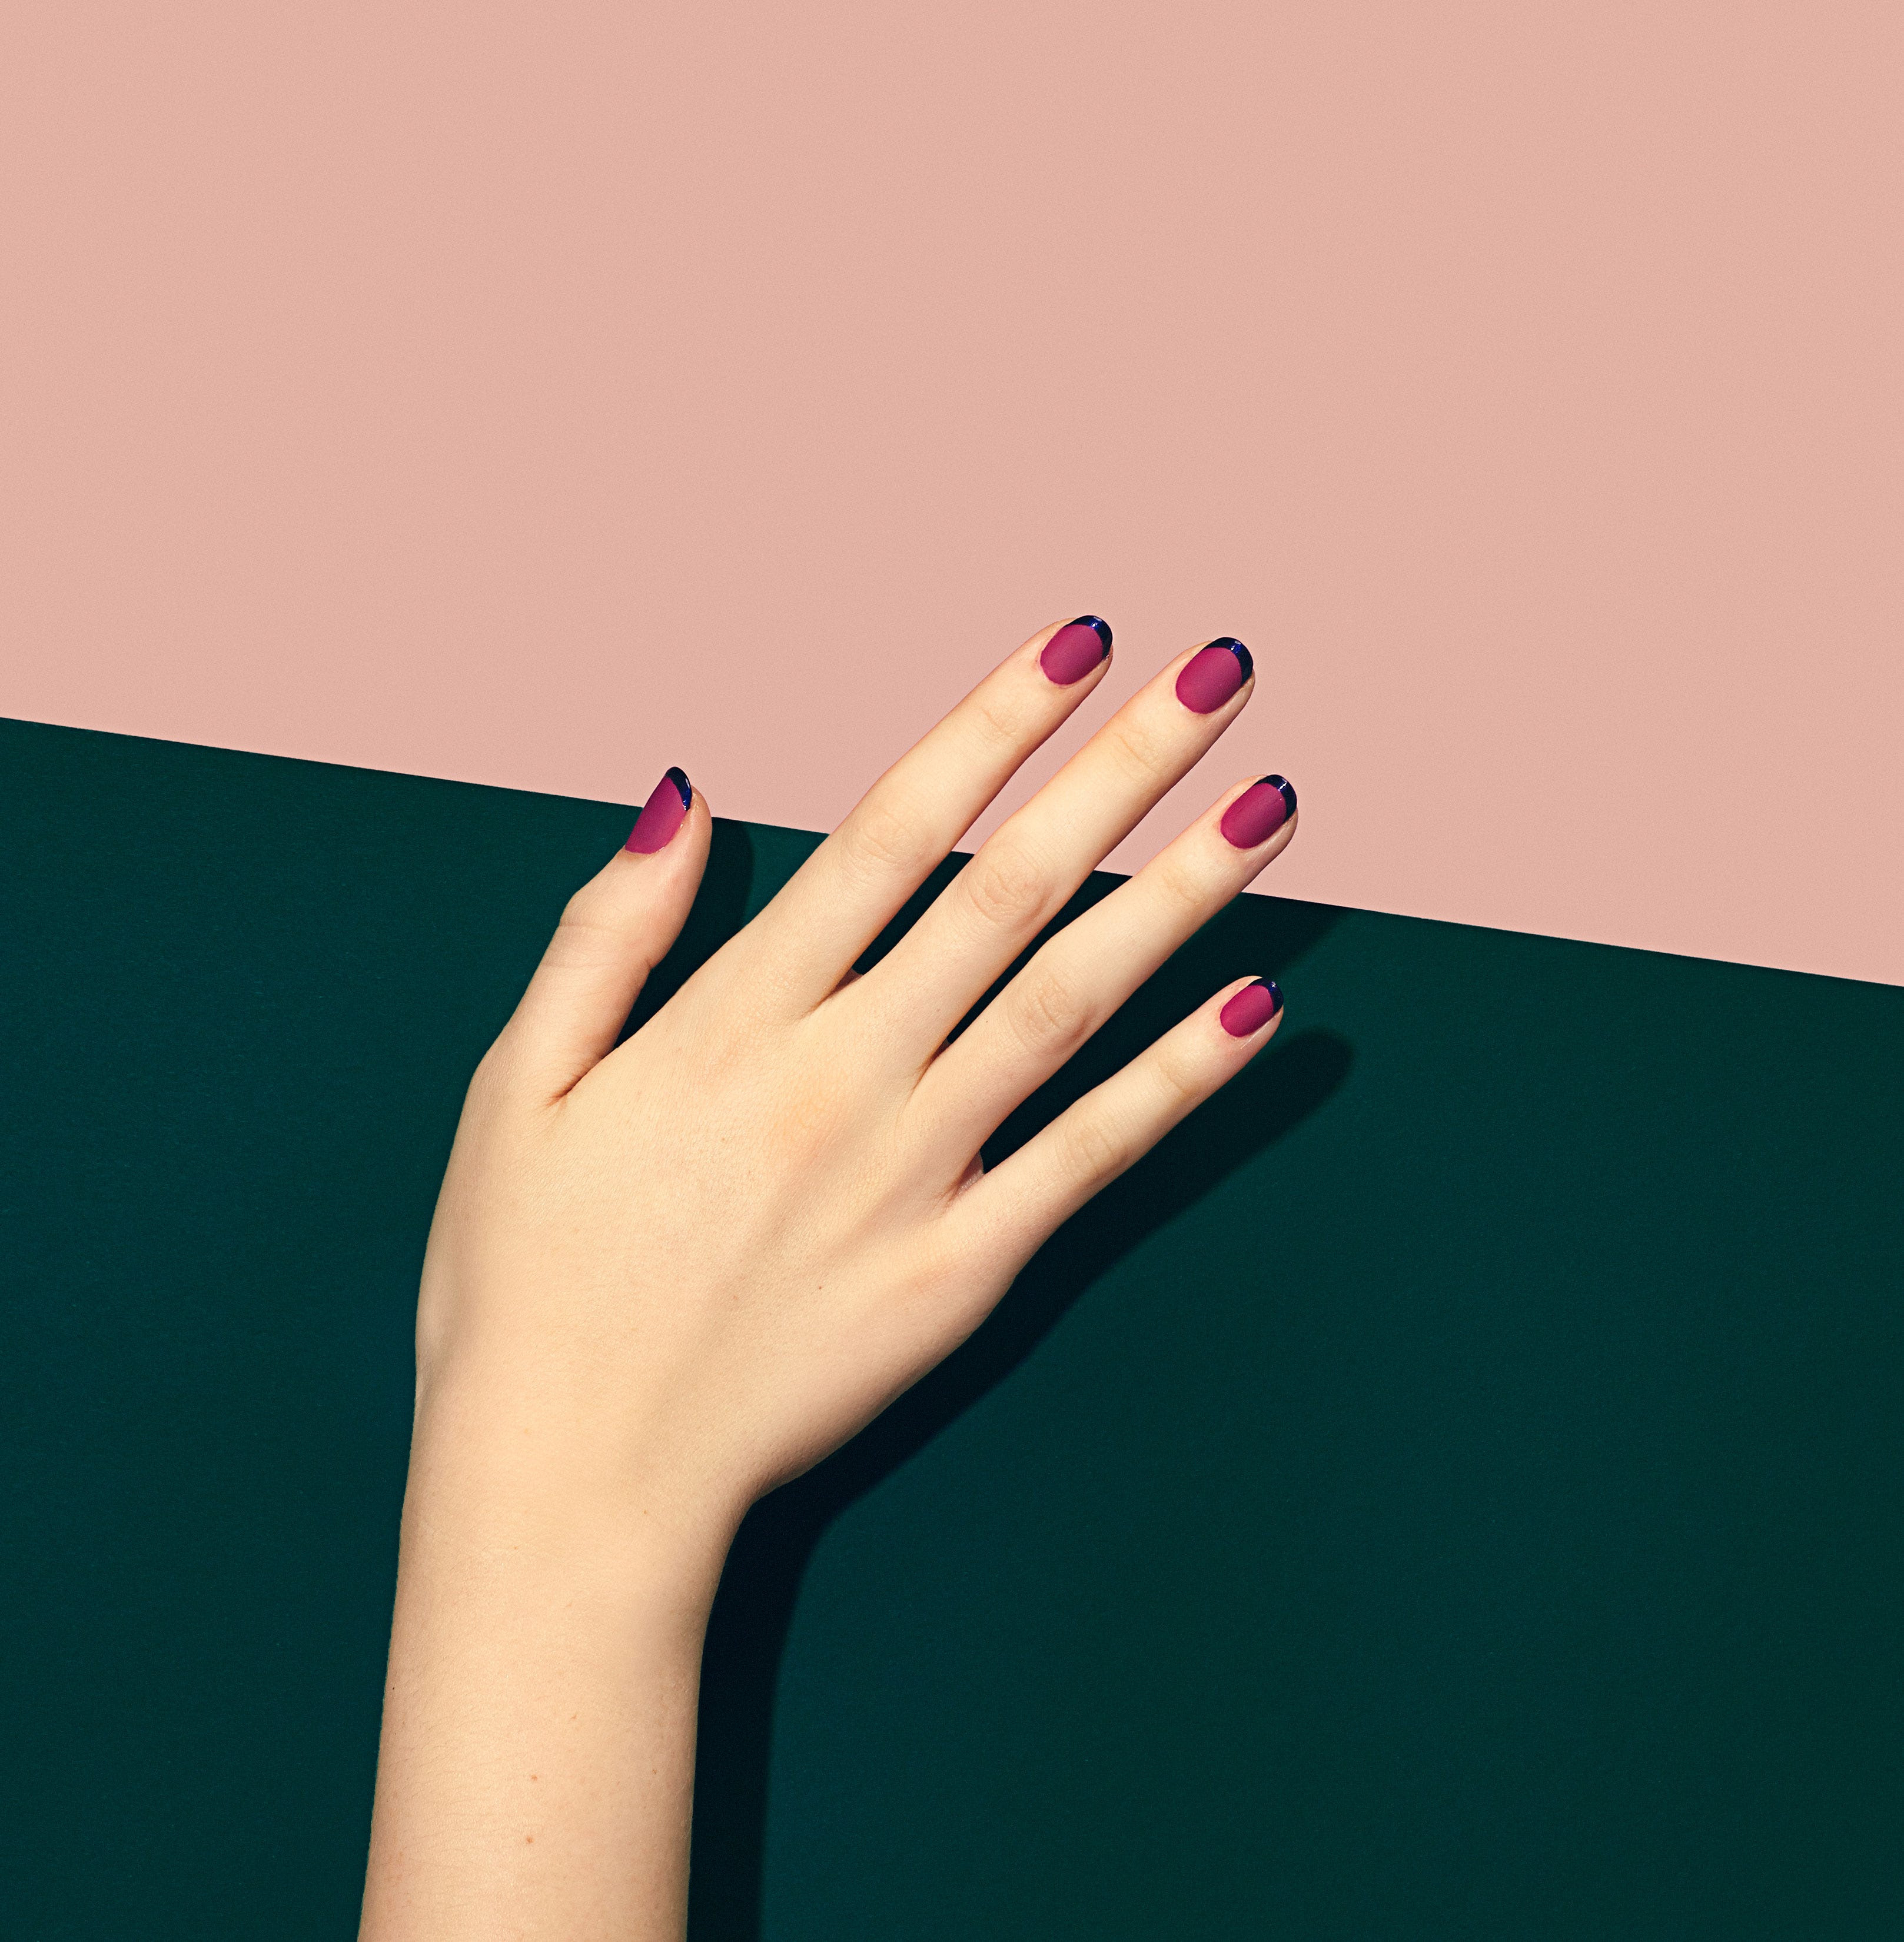 The Most Basic '90s Manicure Is Back